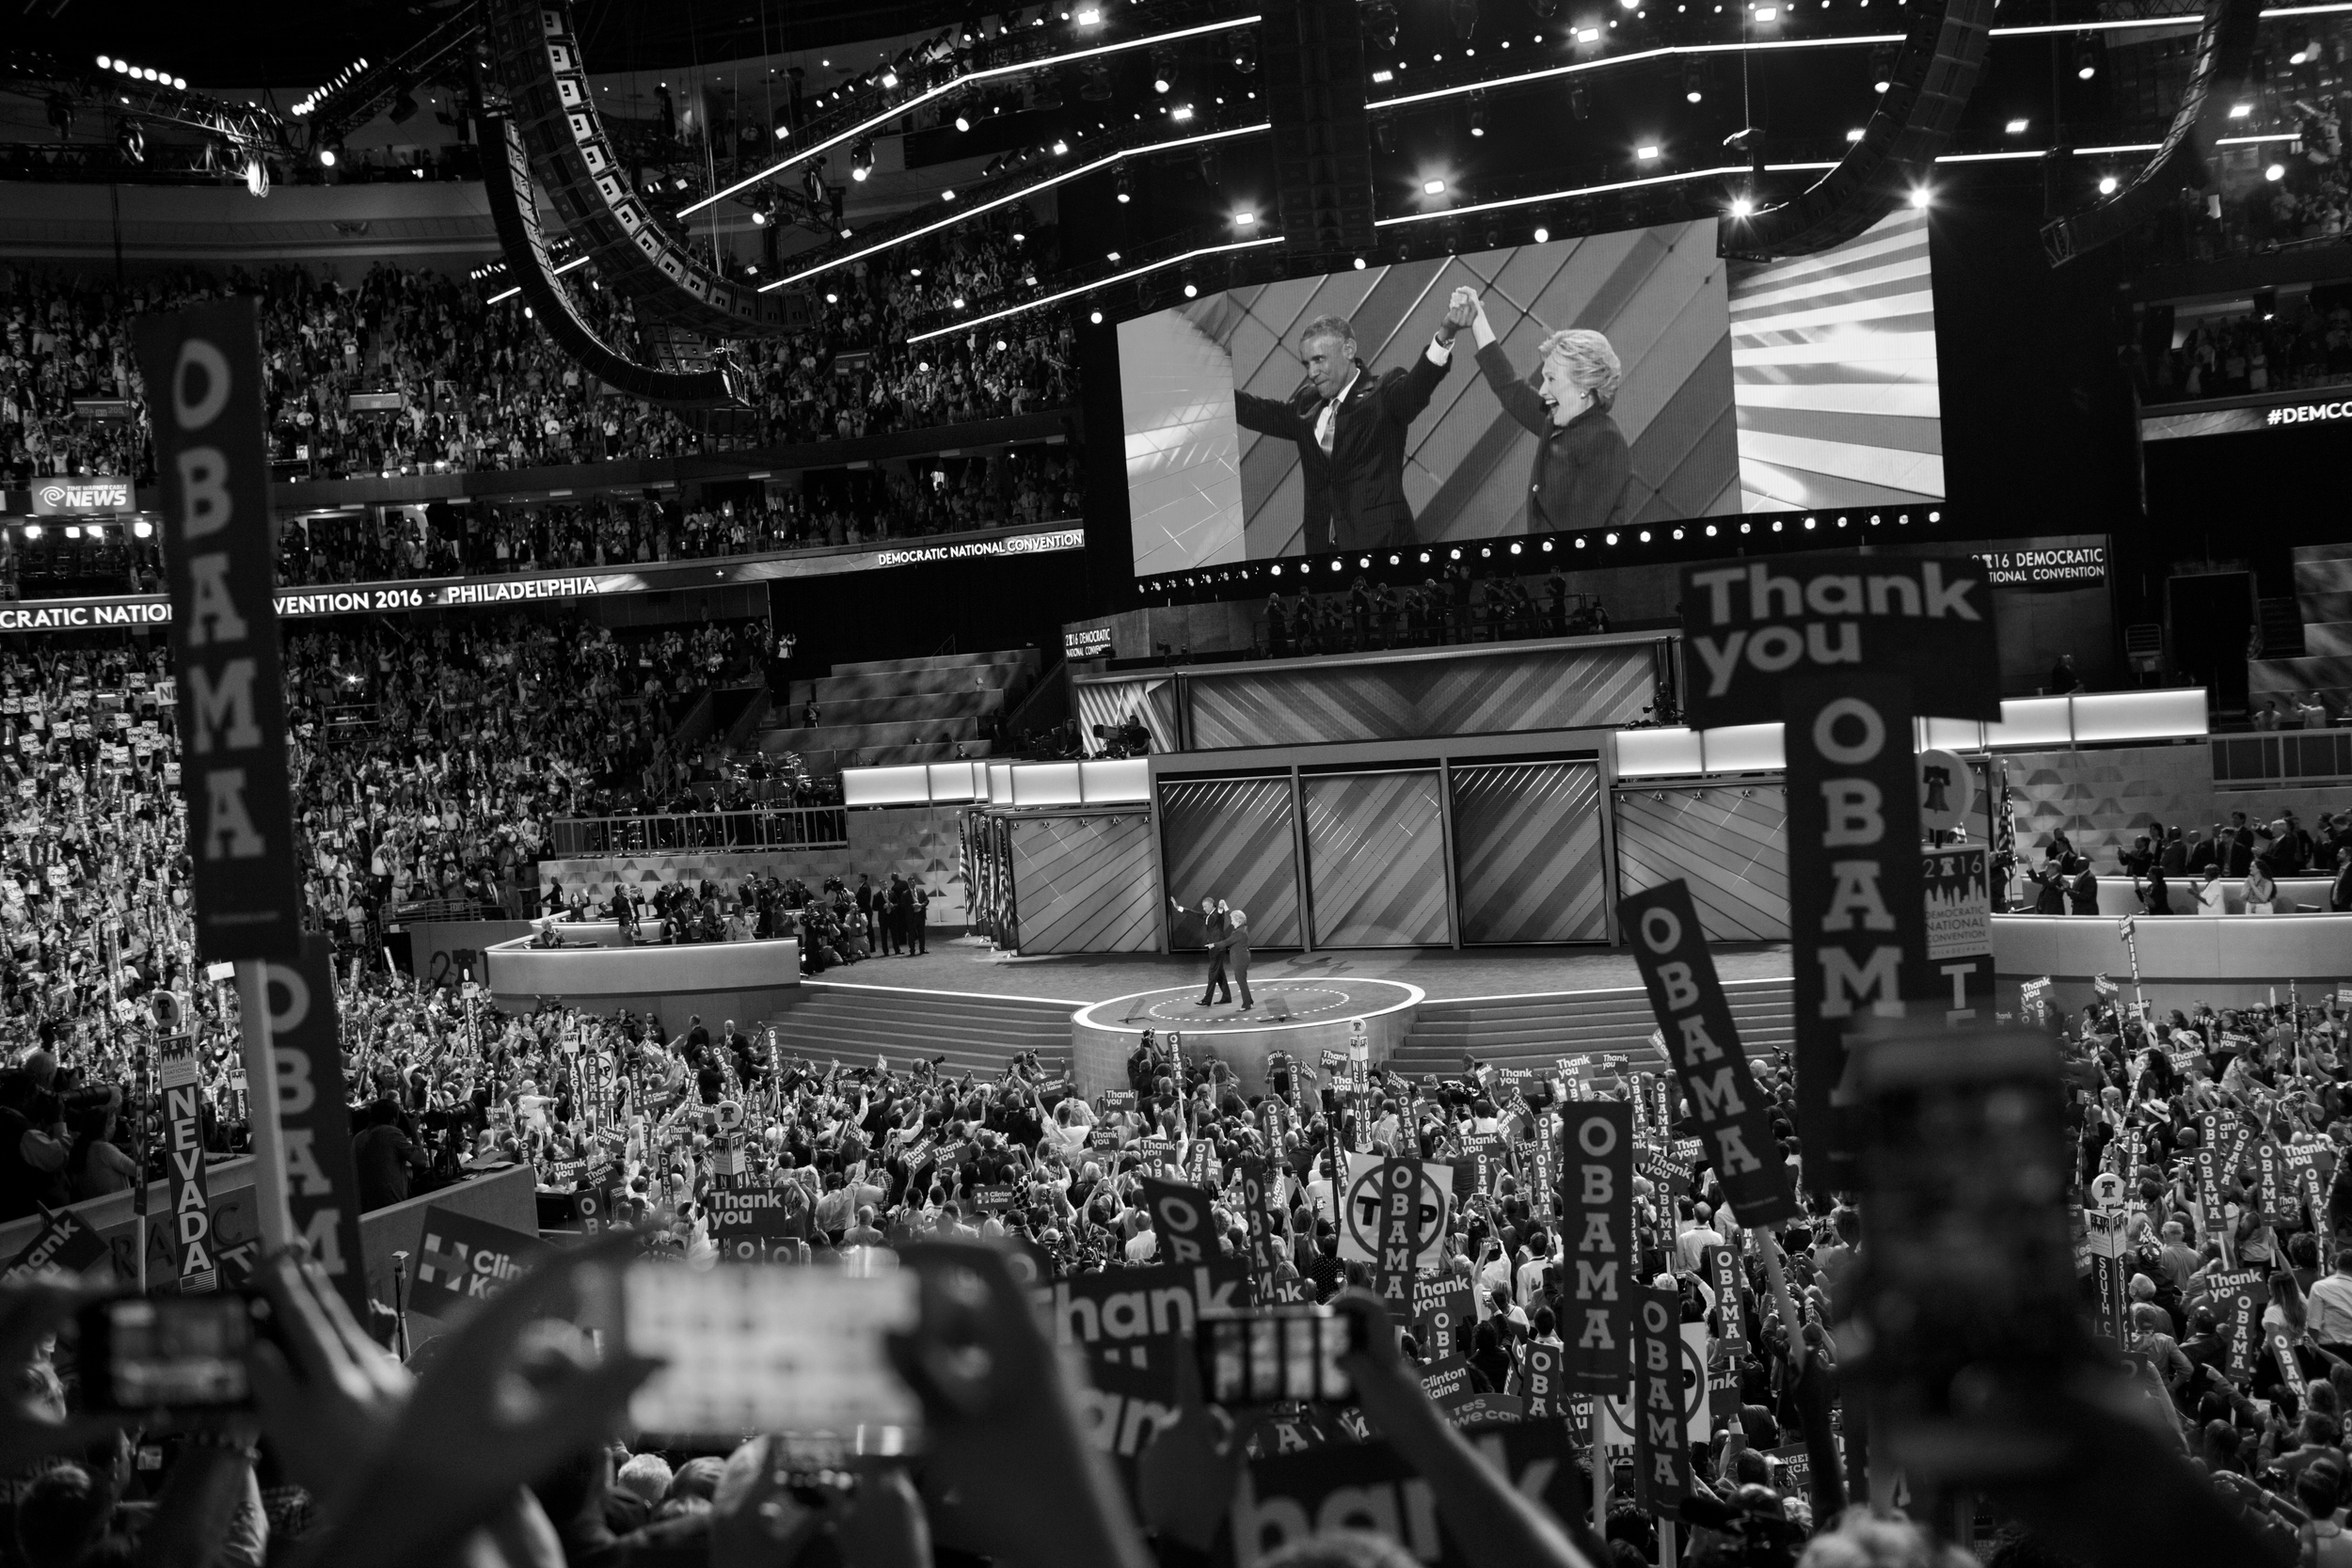 27 July 2016 - Philadelphia, PA - President Barack Obama and Democratic presidential candidate Hillary Clinton present their unity on stage after Obama addressed the delegates at the Democratic National Convention.Photo: Cédric von Niederhäusern